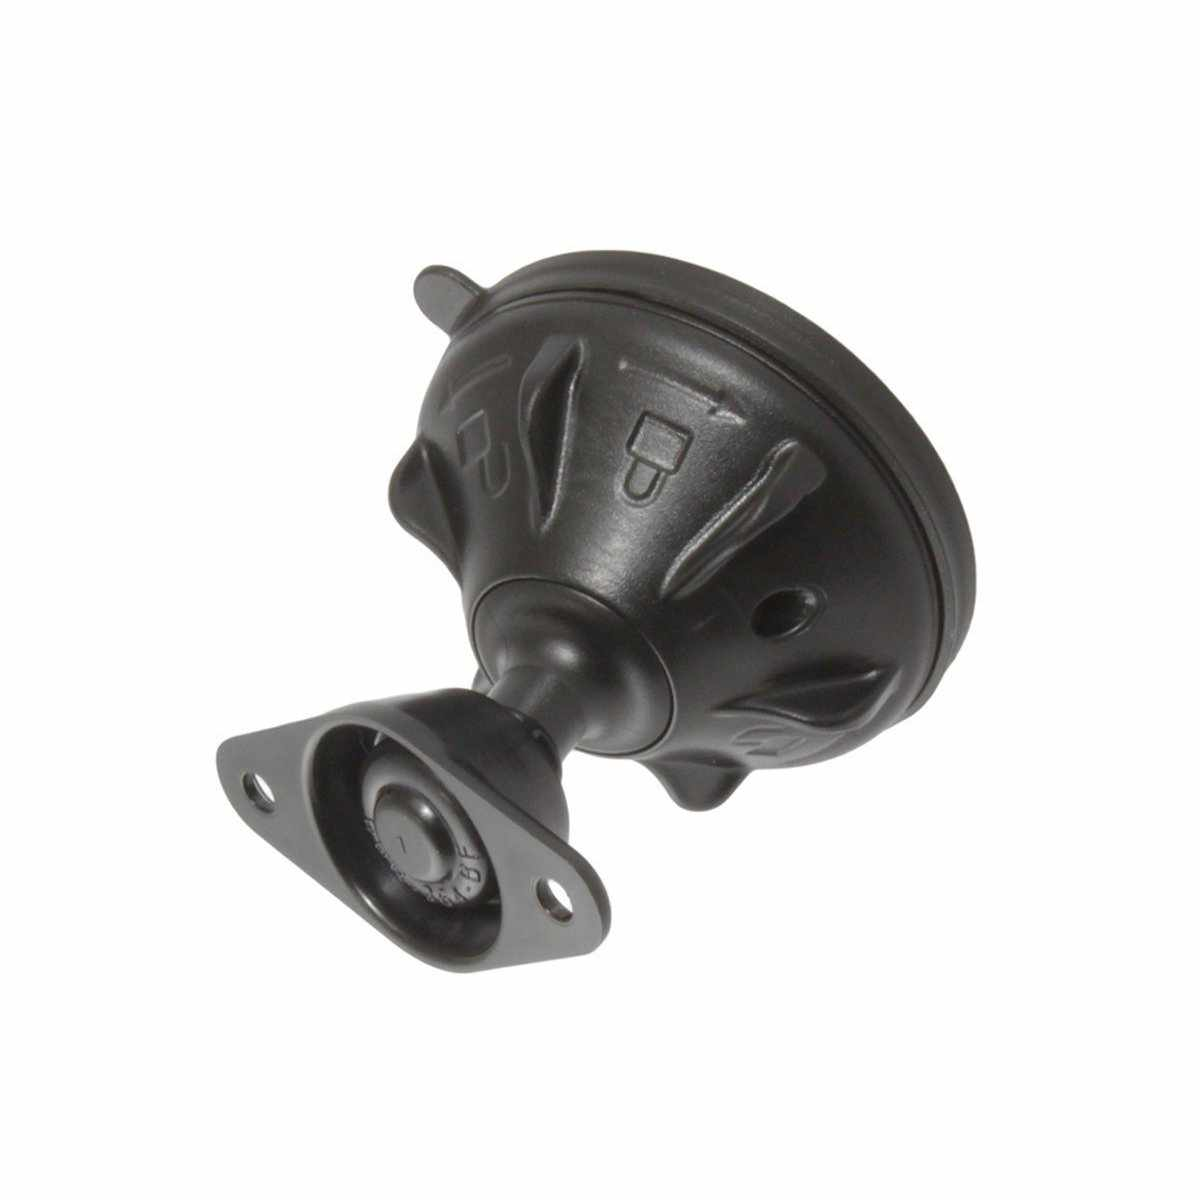 RAM Snap Link Suction Cup w Diamond Adapter (RAP-SB-193U) - Modest Mounts